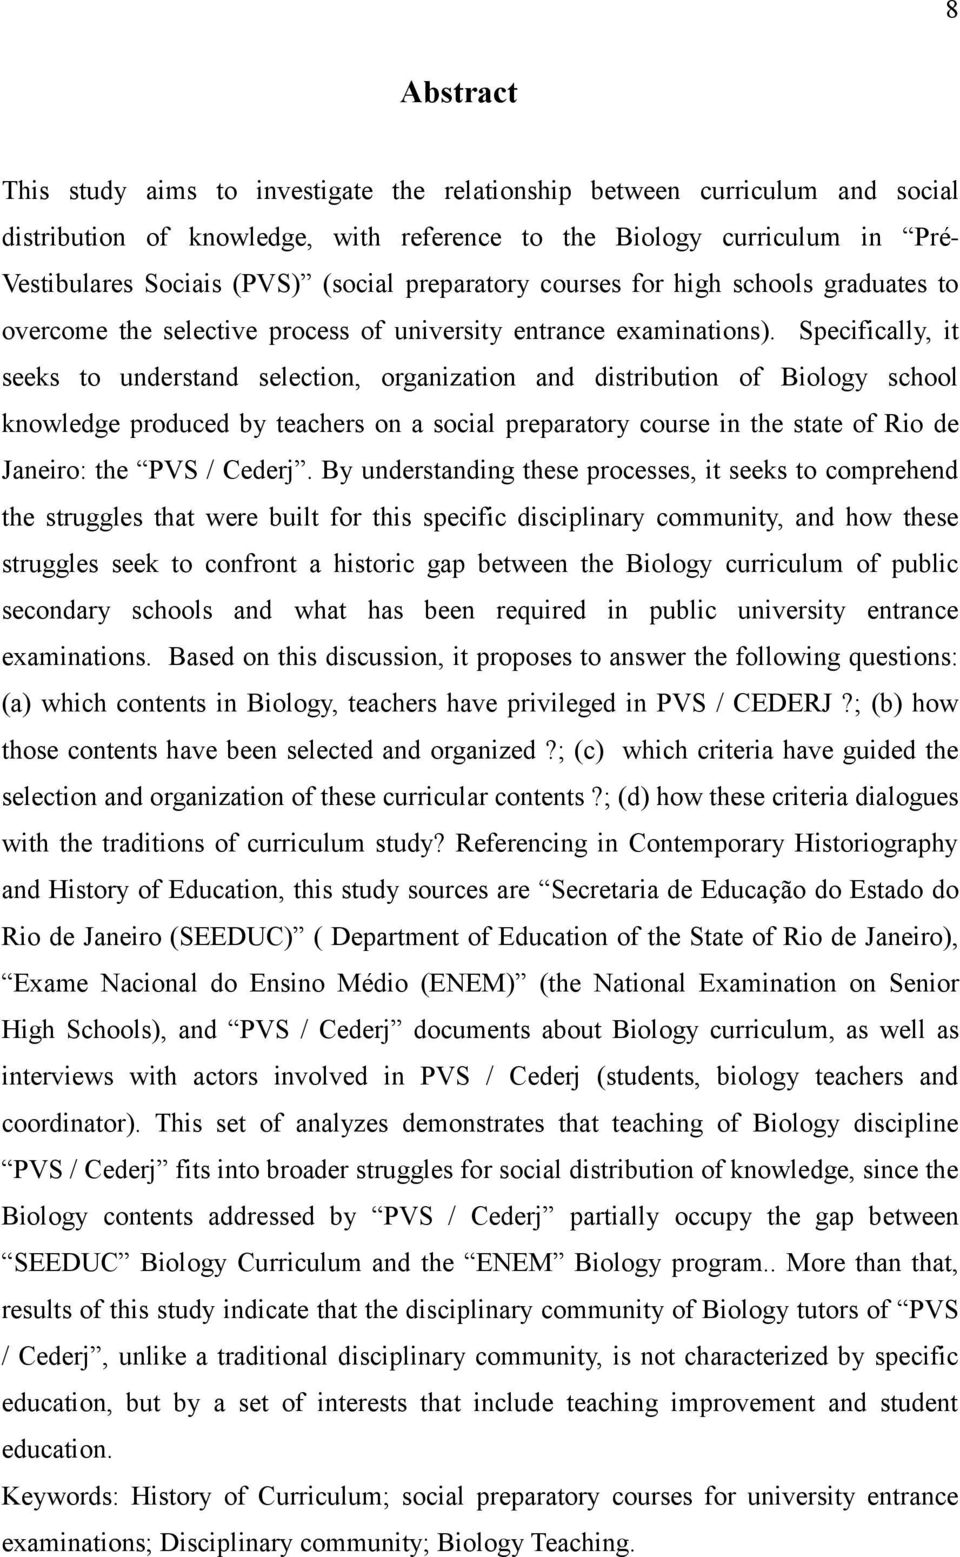 Specifically, it seeks to understand selection, organization and distribution of Biology school knowledge produced by teachers on a social preparatory course in the state of Rio de Janeiro: the PVS /